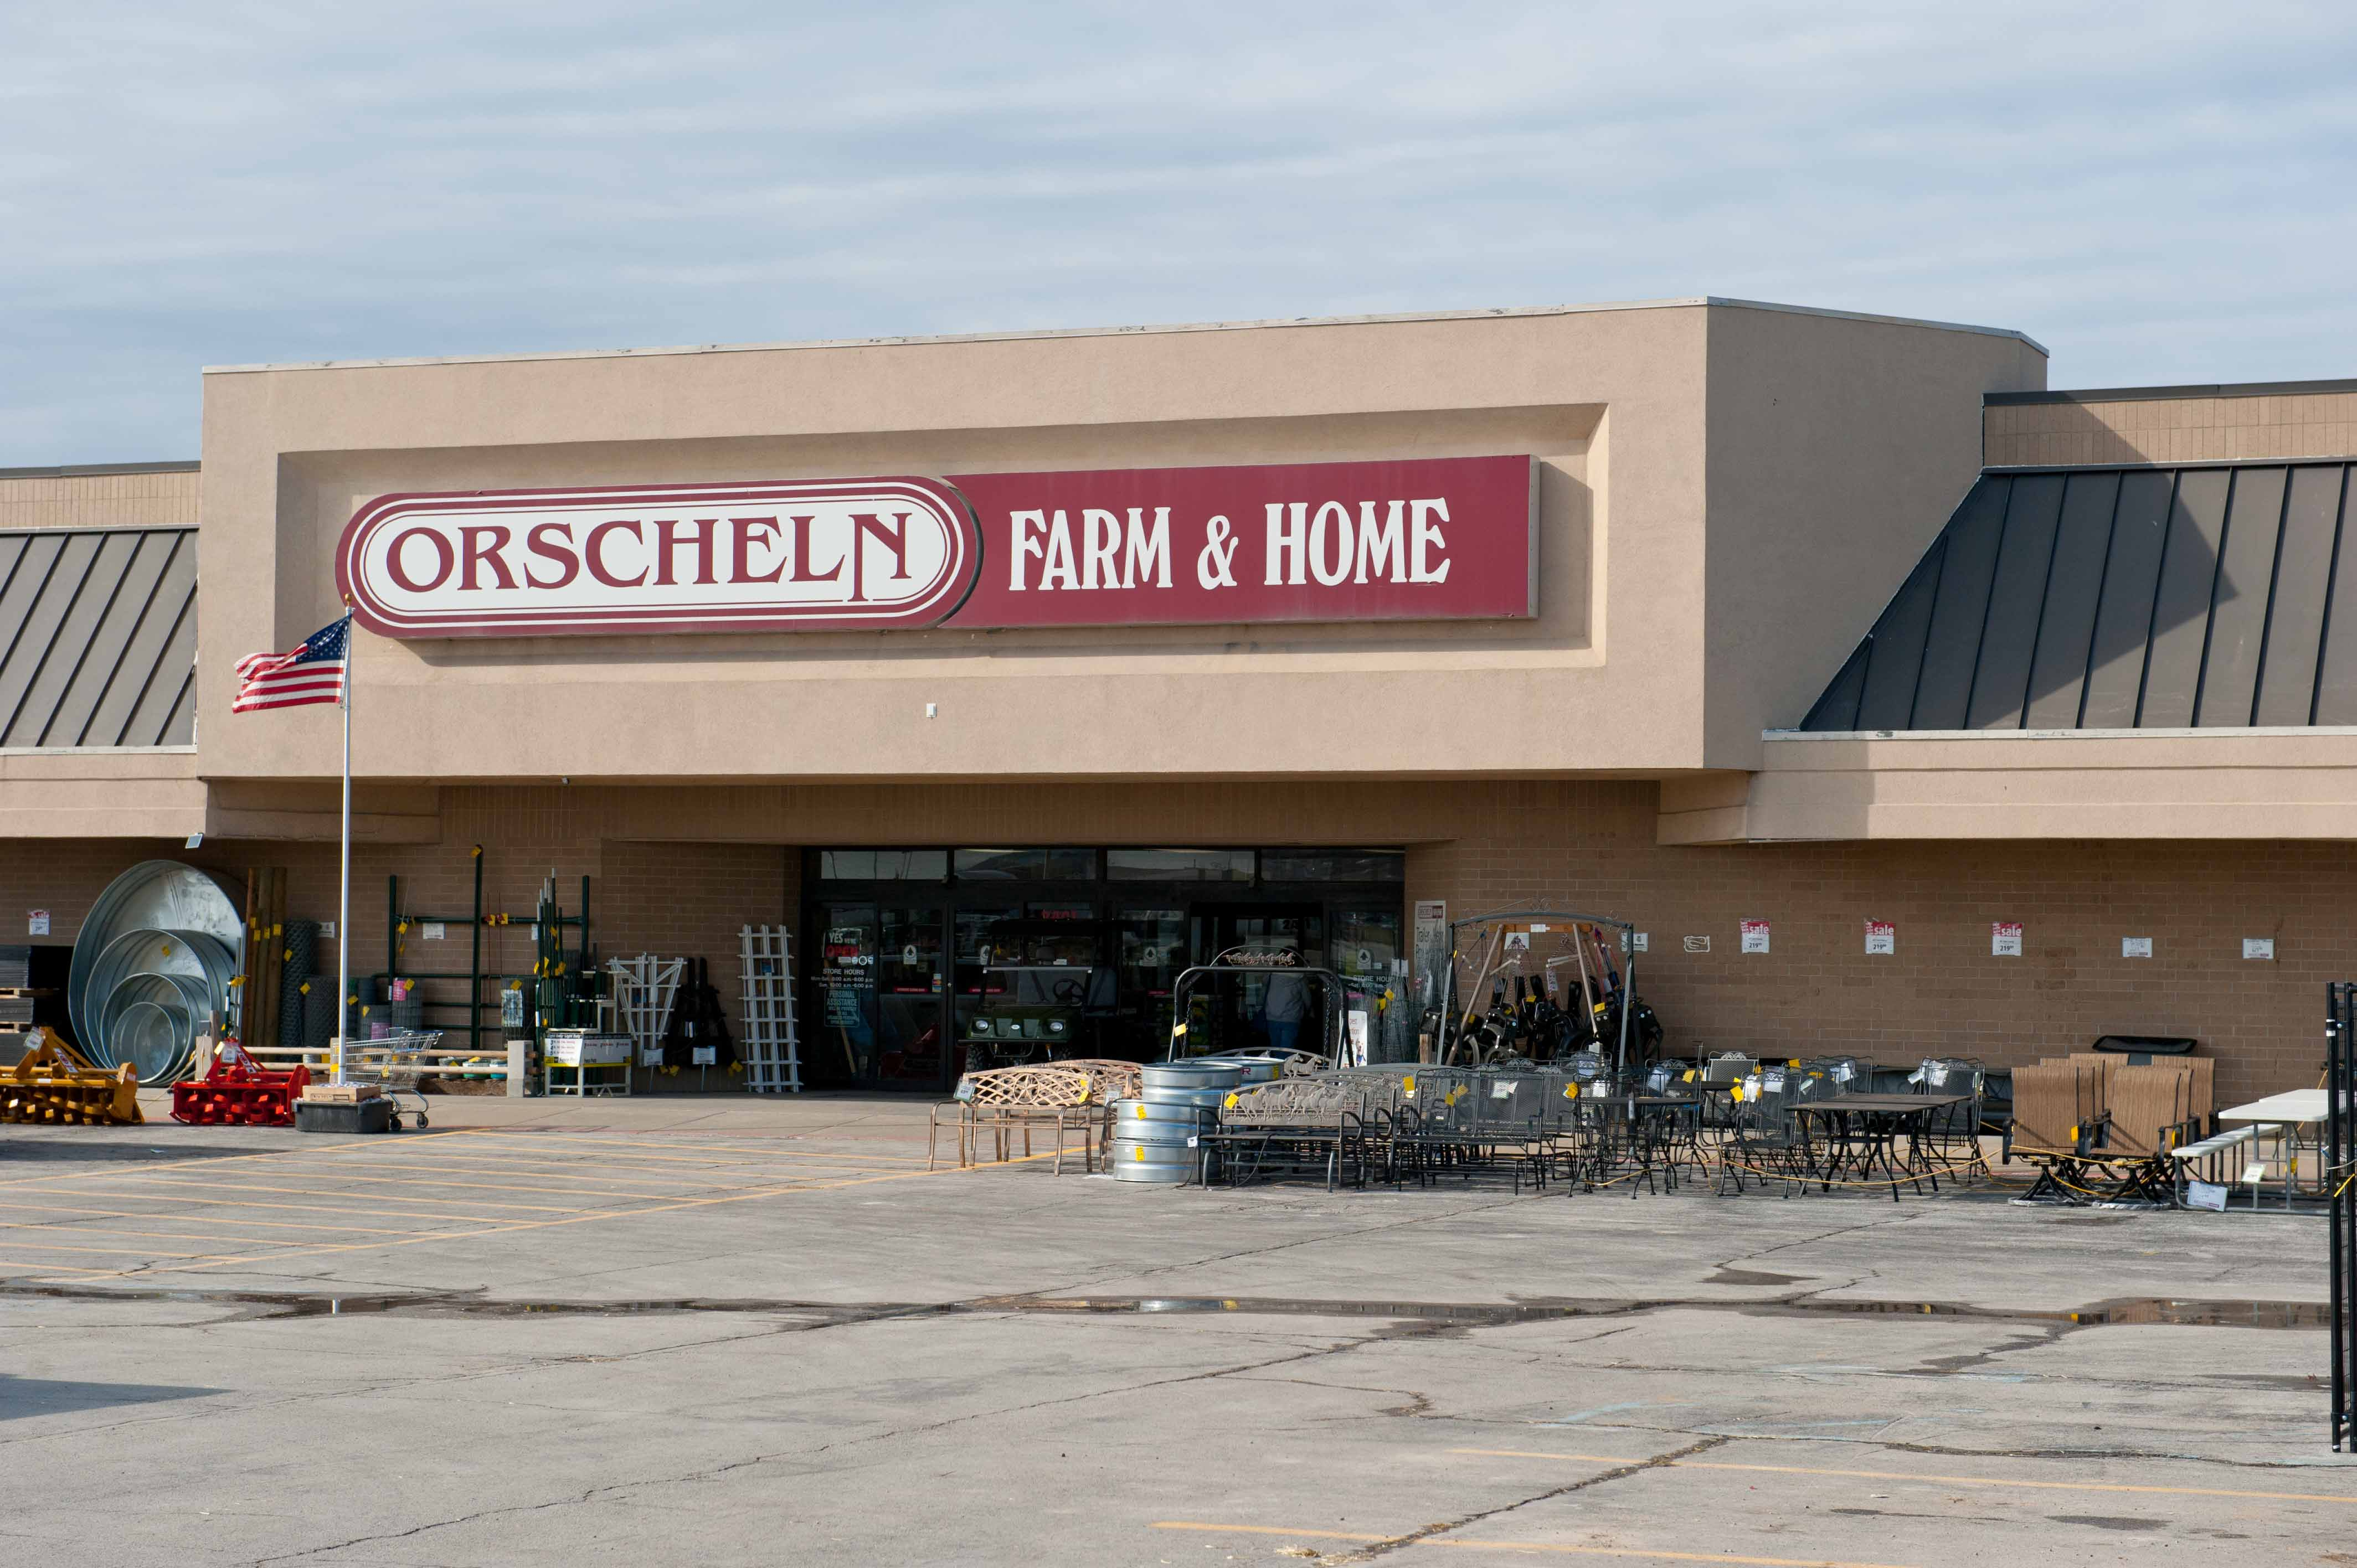 Front view of Orscheln Farm & Home Store in Nevada, Missouri 64772